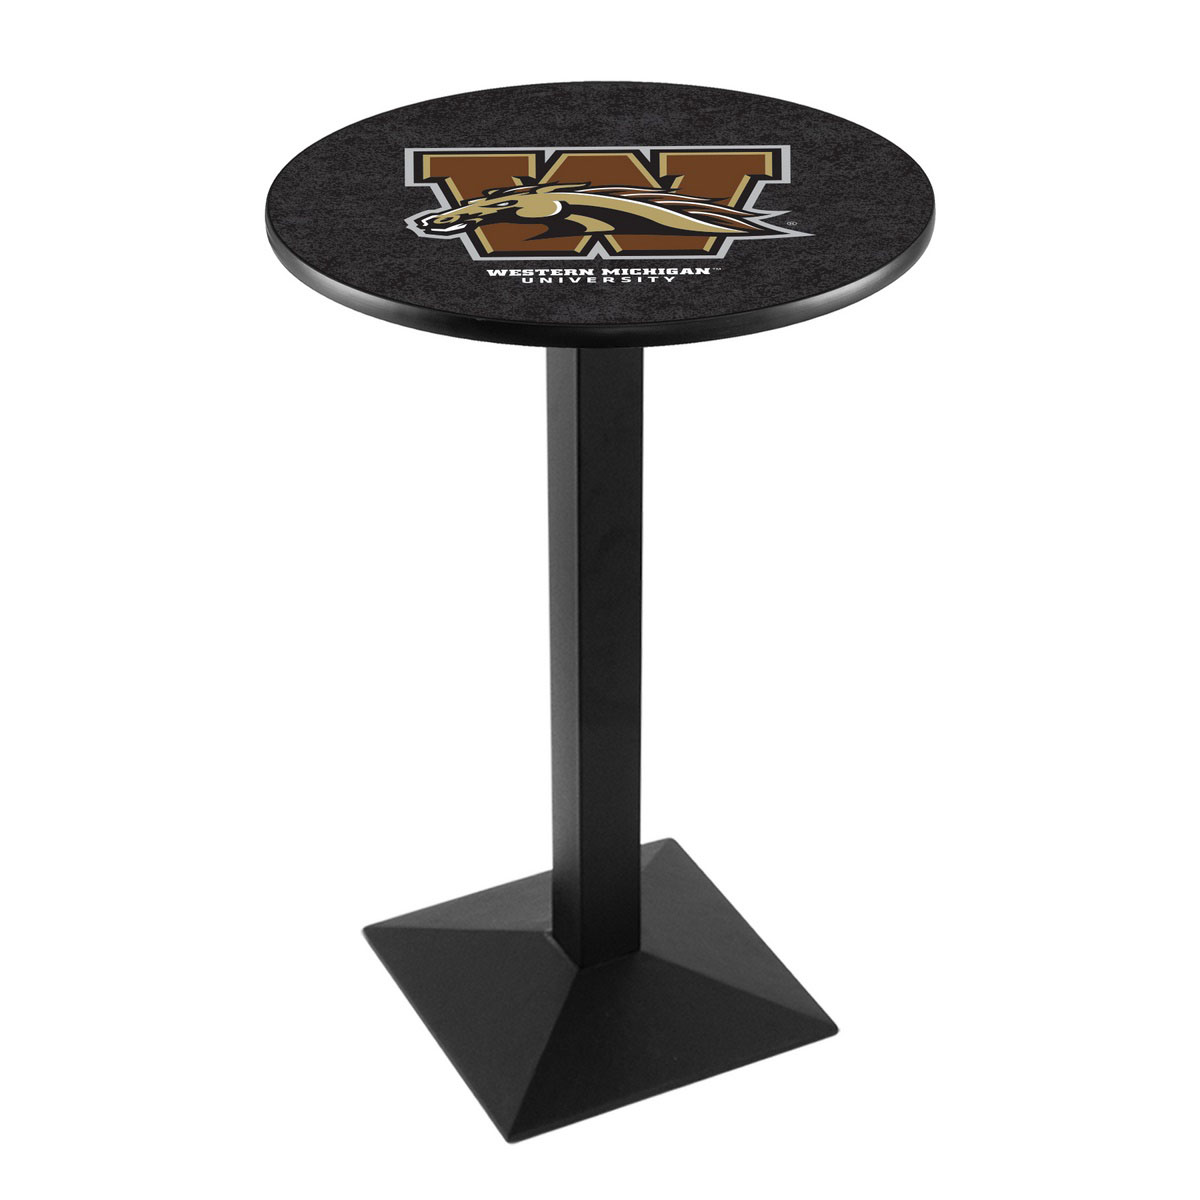 Check out the Western Michigan University Logo Pub Bar Table Square Stand Product Photo